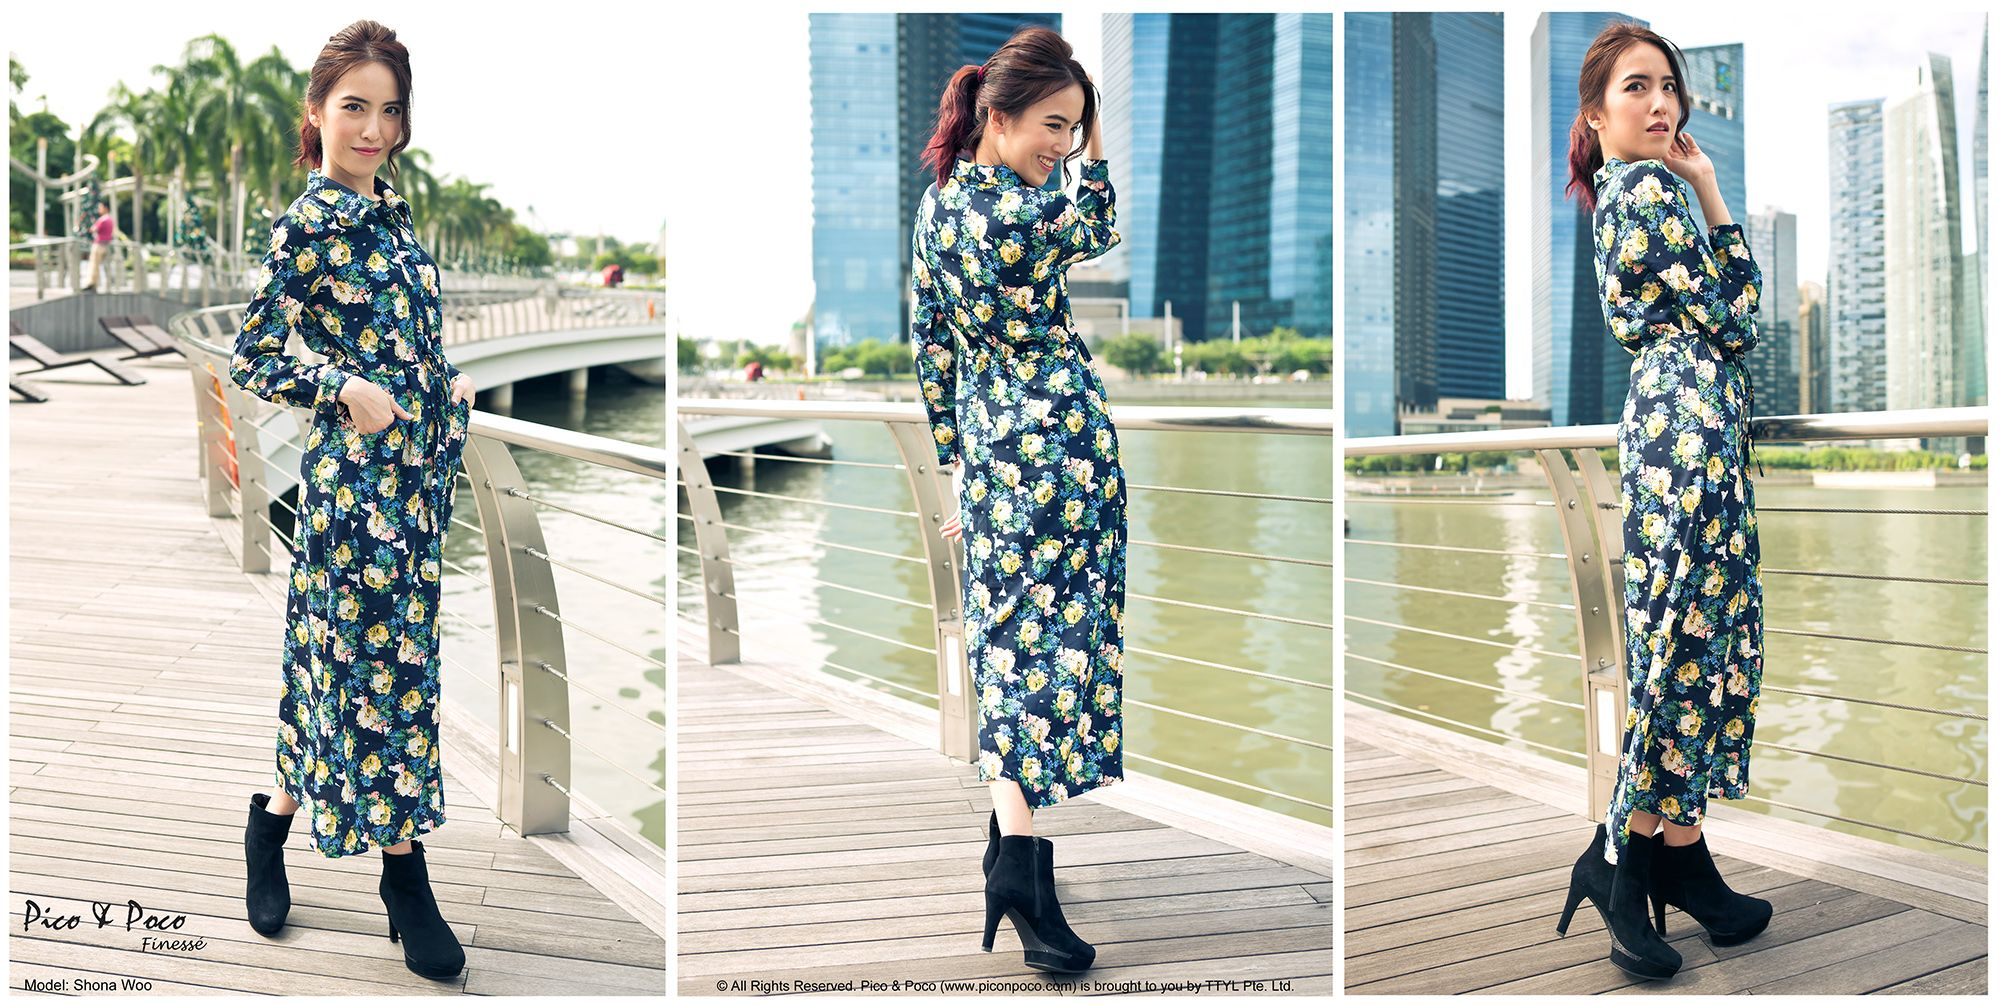 Long-sleeved floral maxi dress with side pockets